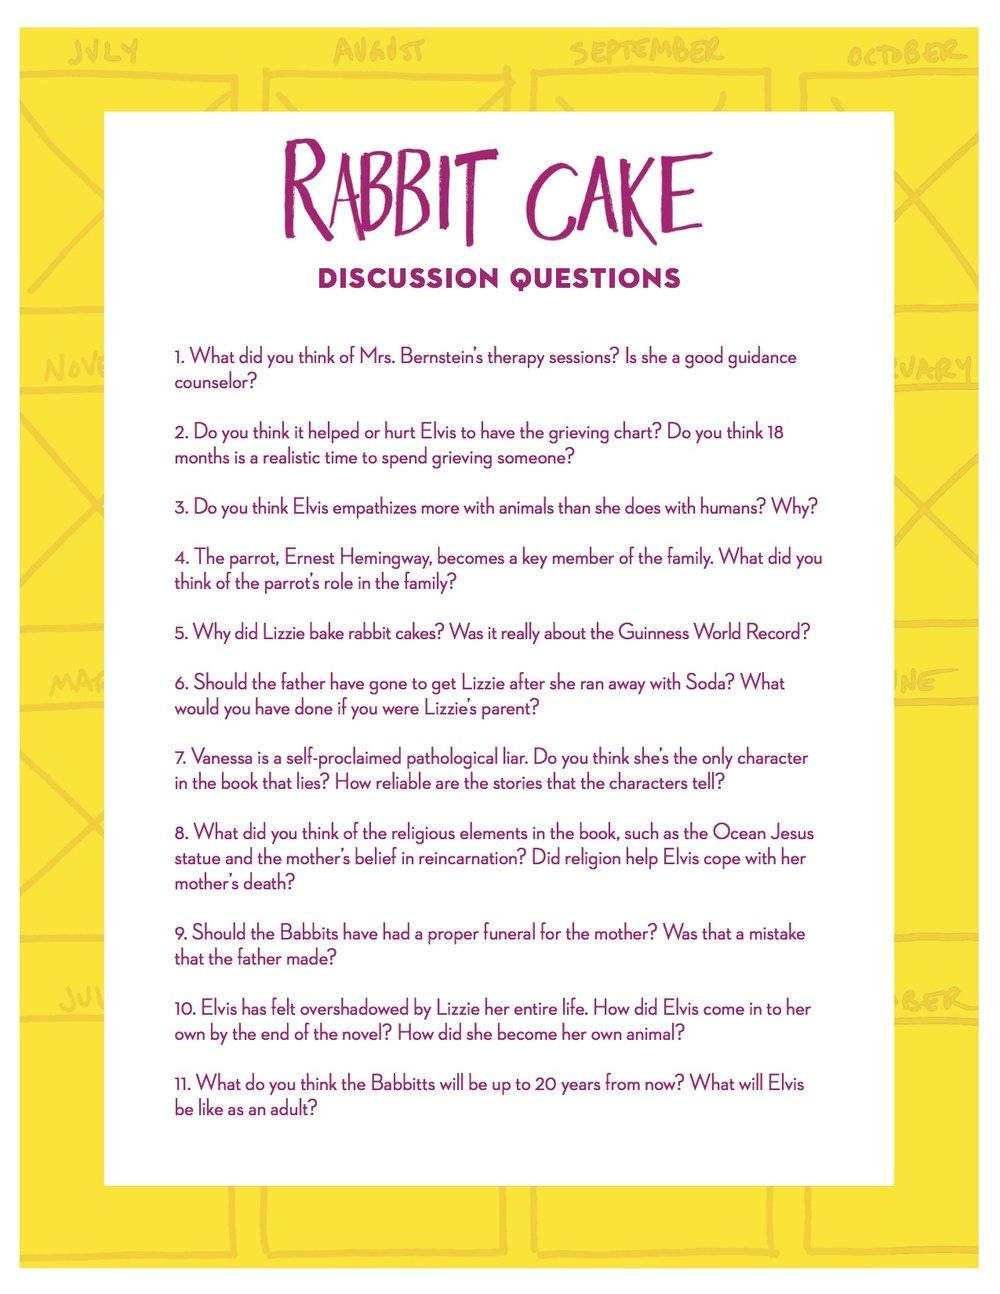 Rabbit Cake Discussion Questions.indd.jpg